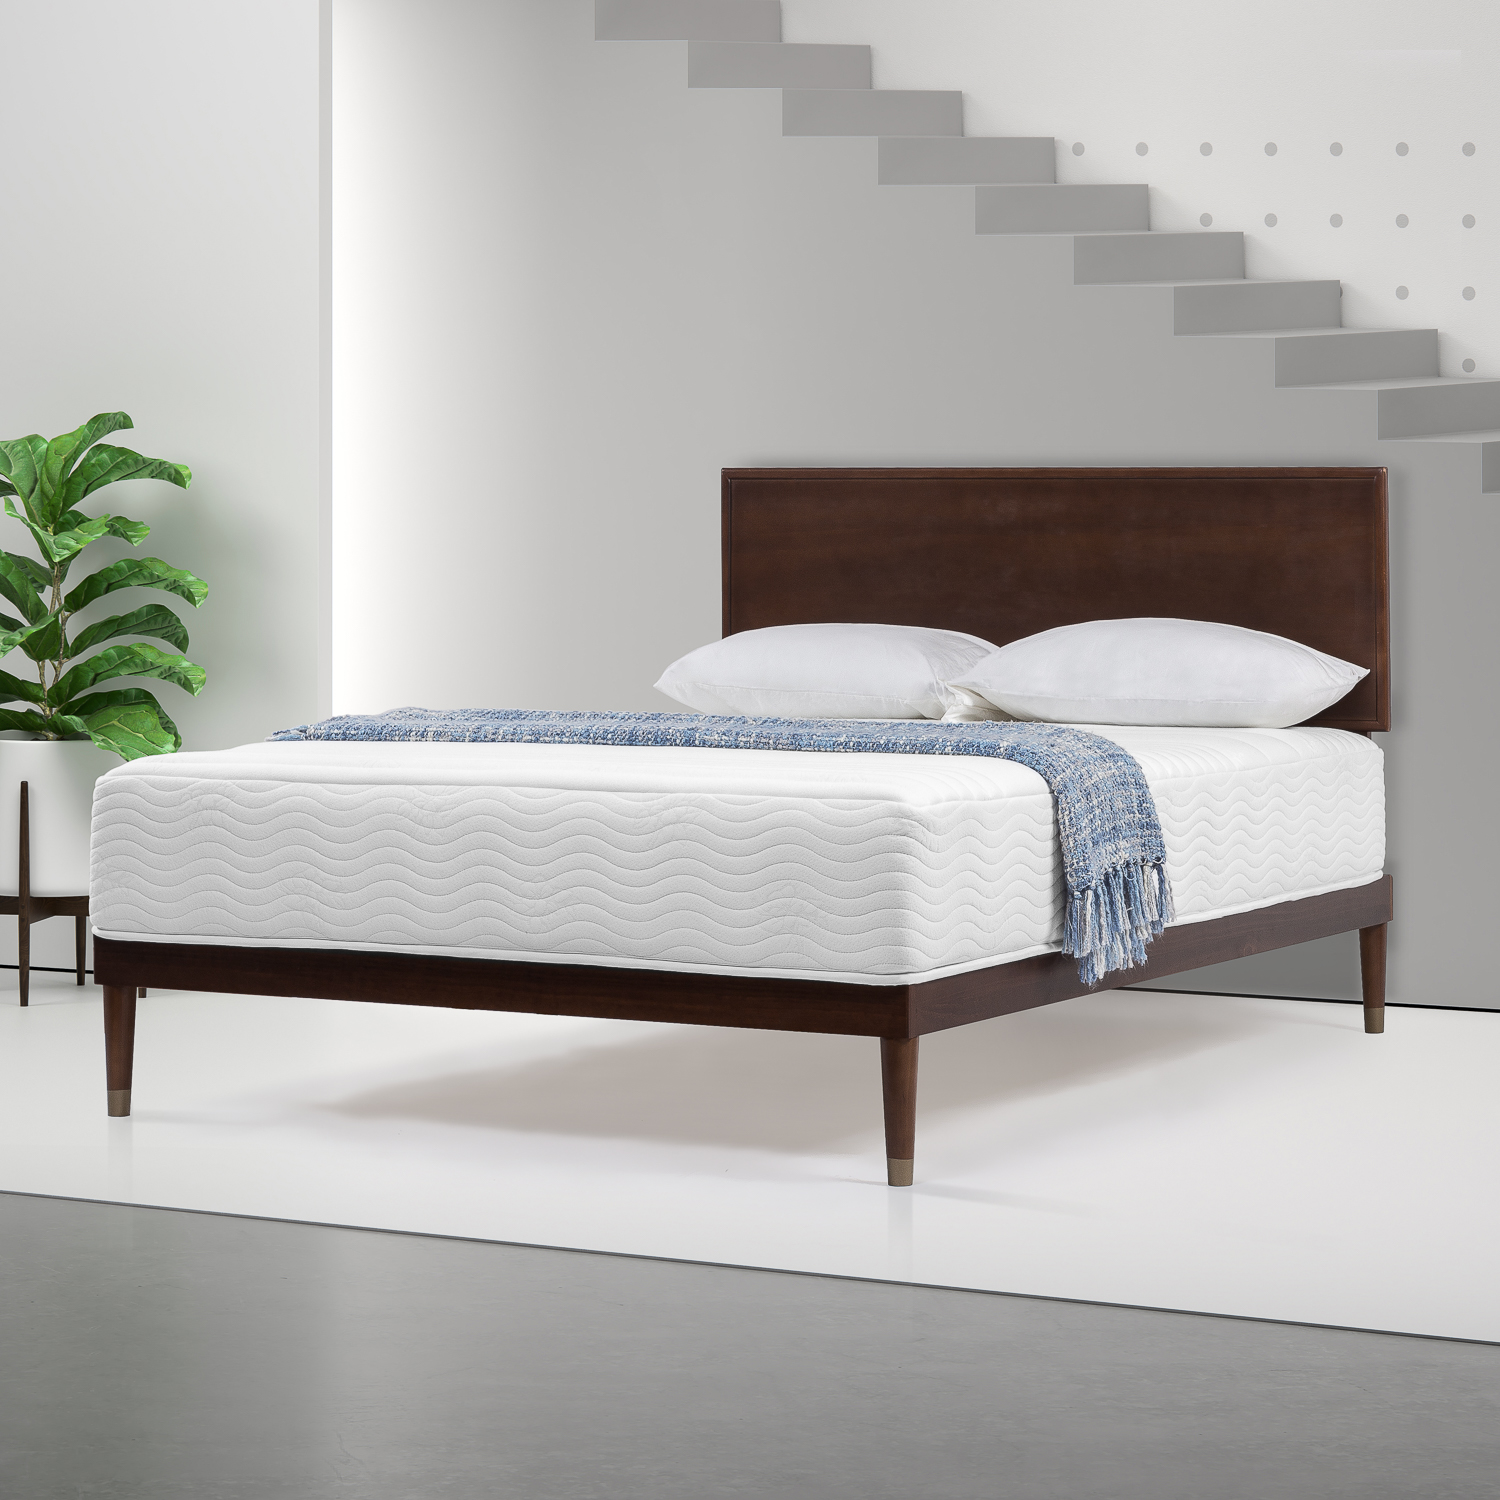 Spa Sensations by Zinus 10'' Memory Foam and Spring Hybrid Mattress, Multiple Sizes